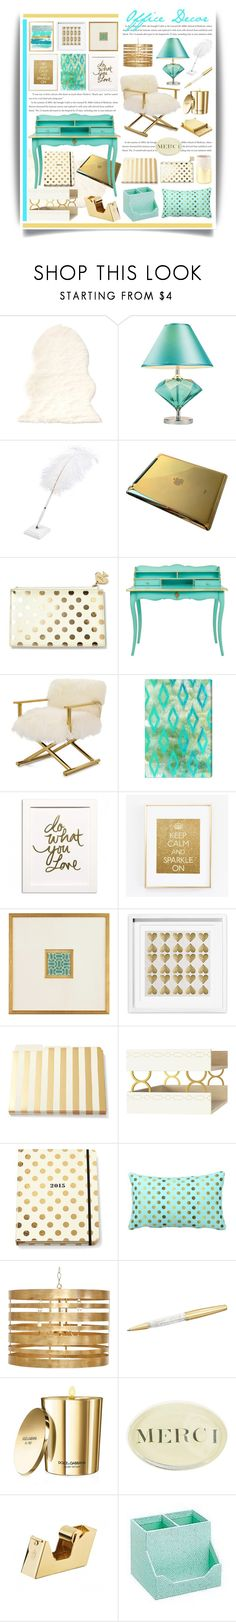 """Gold & Aqua Office Decor"" by hmb213 ❤ liked on Polyvore featuring interior, interiors, interior design, home, home decor, interior decorating, Kate Spade, Mitchell Gold + Bob Williams, Oliver Gal Artist Co. and John-Richard"